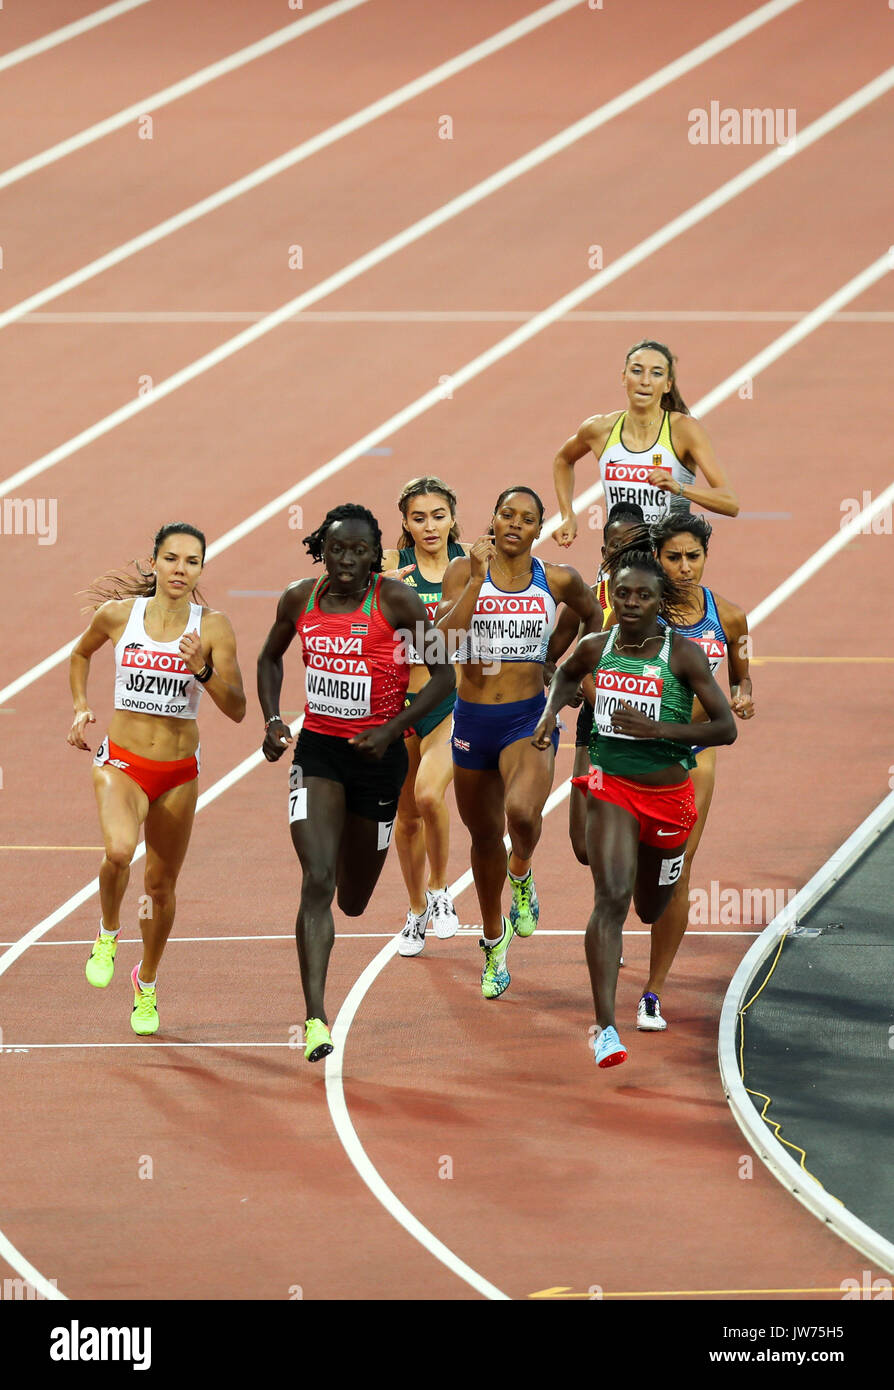 London, UK. 11th Aug, 2017. London, August 11 2017 . The pack heads down the back straight in the third women's 800m semi-final on day eight of the IAAF London 2017 world Championships at the London Stadium. Credit: Paul Davey/Alamy Live News - Stock Image